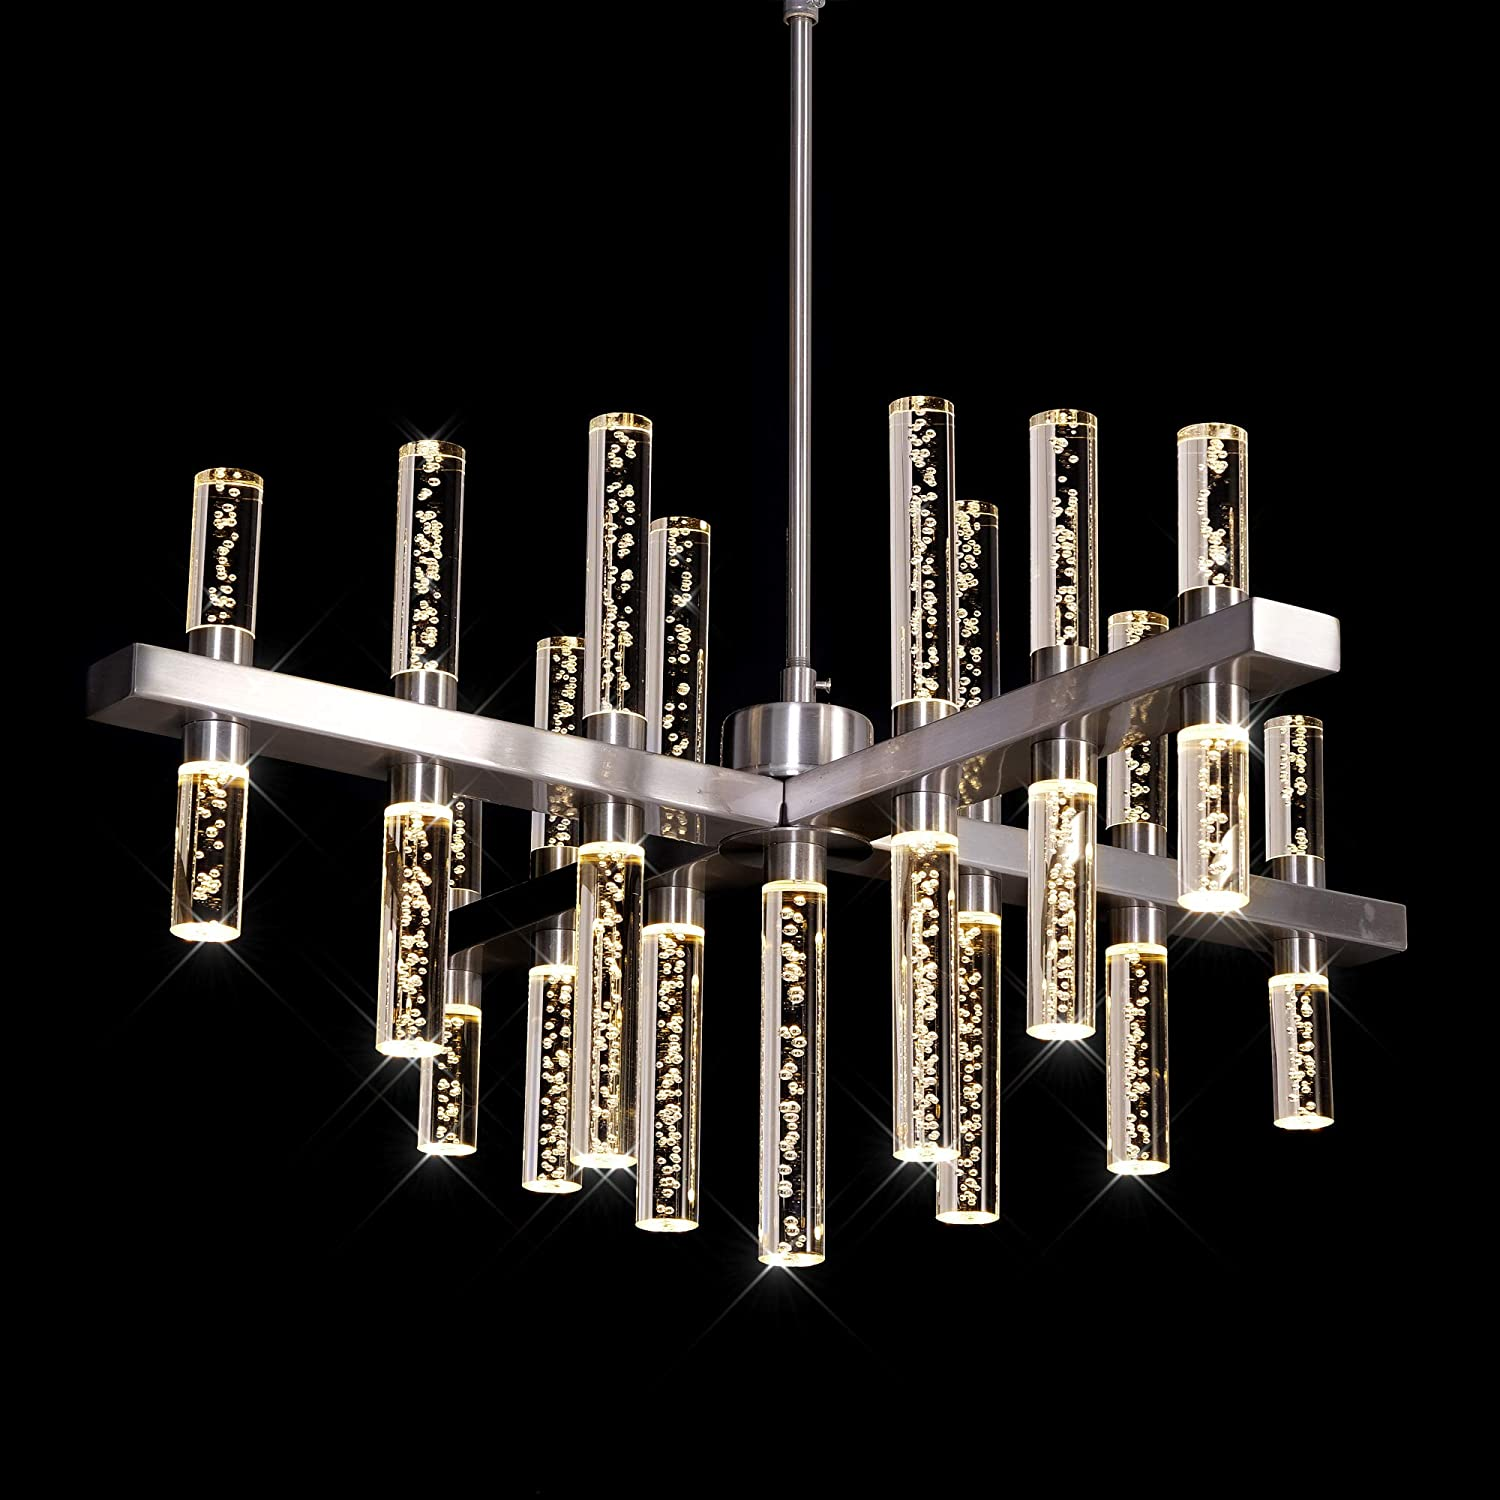 Meerosee Modern Chandelier Lighting Led Pendant Lights Fixture With Acrylic Shade Satin Nickel Island Chandeliers Ceiling Dining Room Living Room Contemporary Kitchen Dimmable Cool White Mixglass Com Br